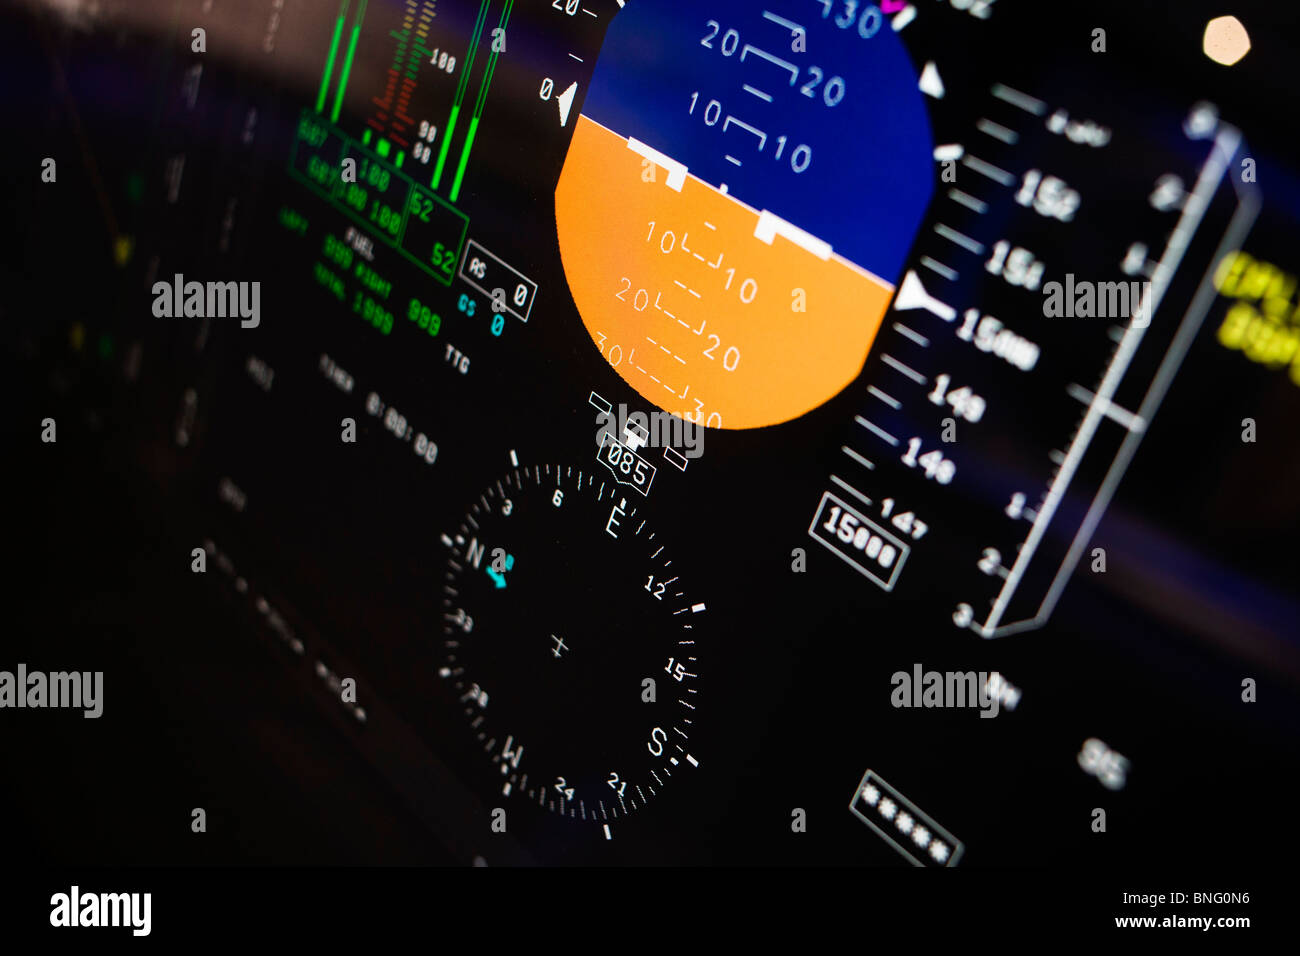 State-of-the-art cockpit LCD flight instruments made by Lockheed-Martin used by pilots on a Sikorsky MH-60R helicopter. - Stock Image